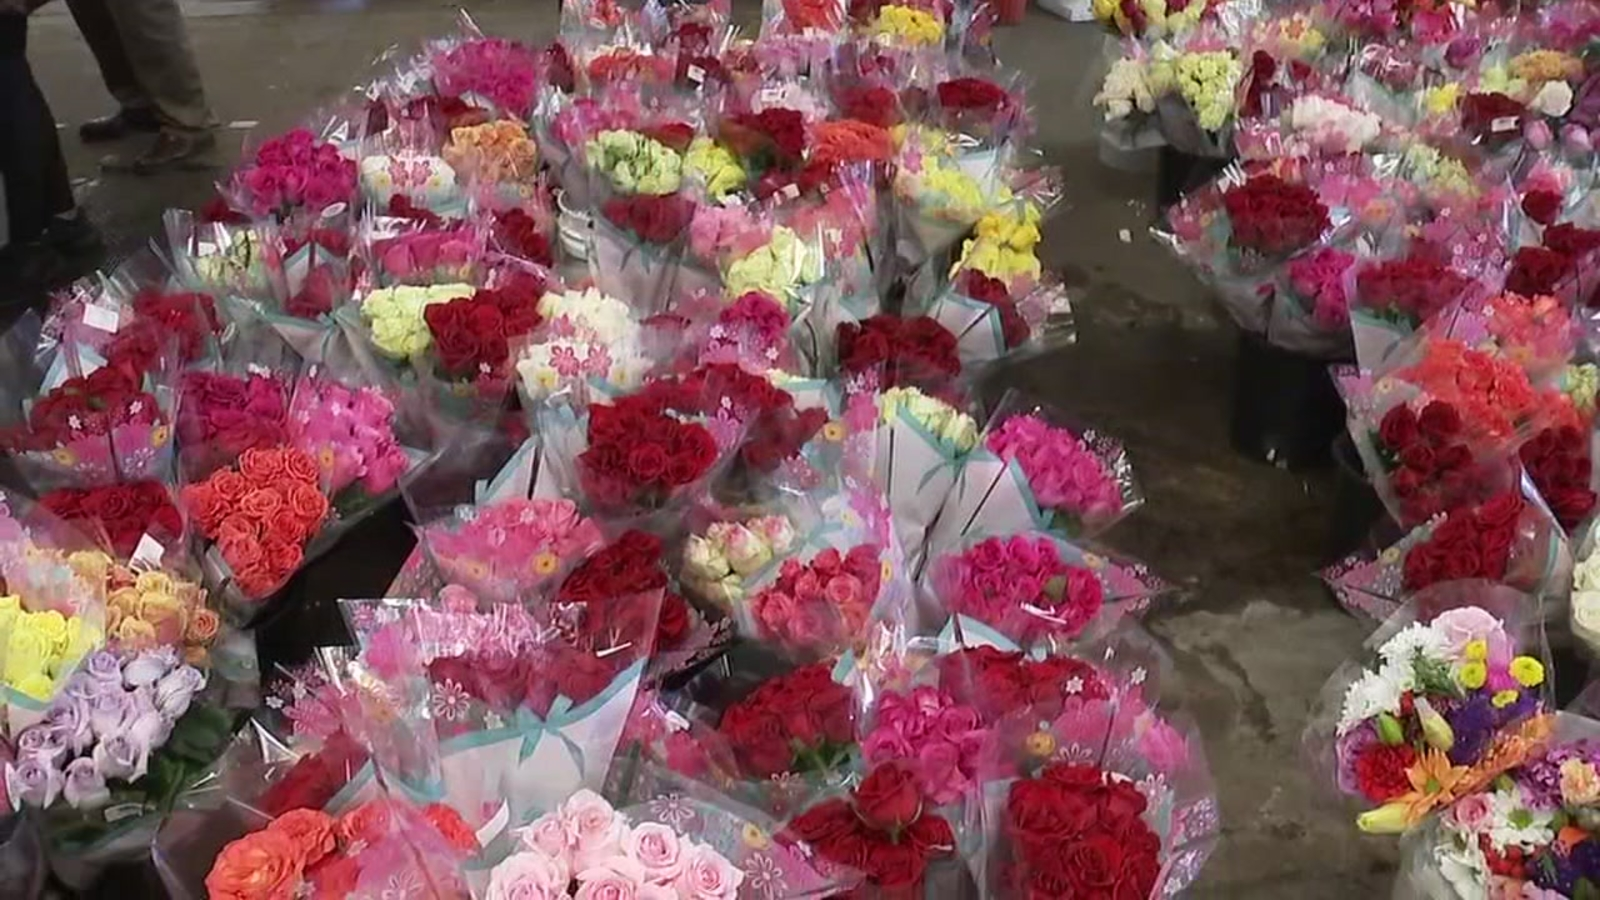 Fannin Flowers open overnight for Houston's Mother's Day needs | abc13.com